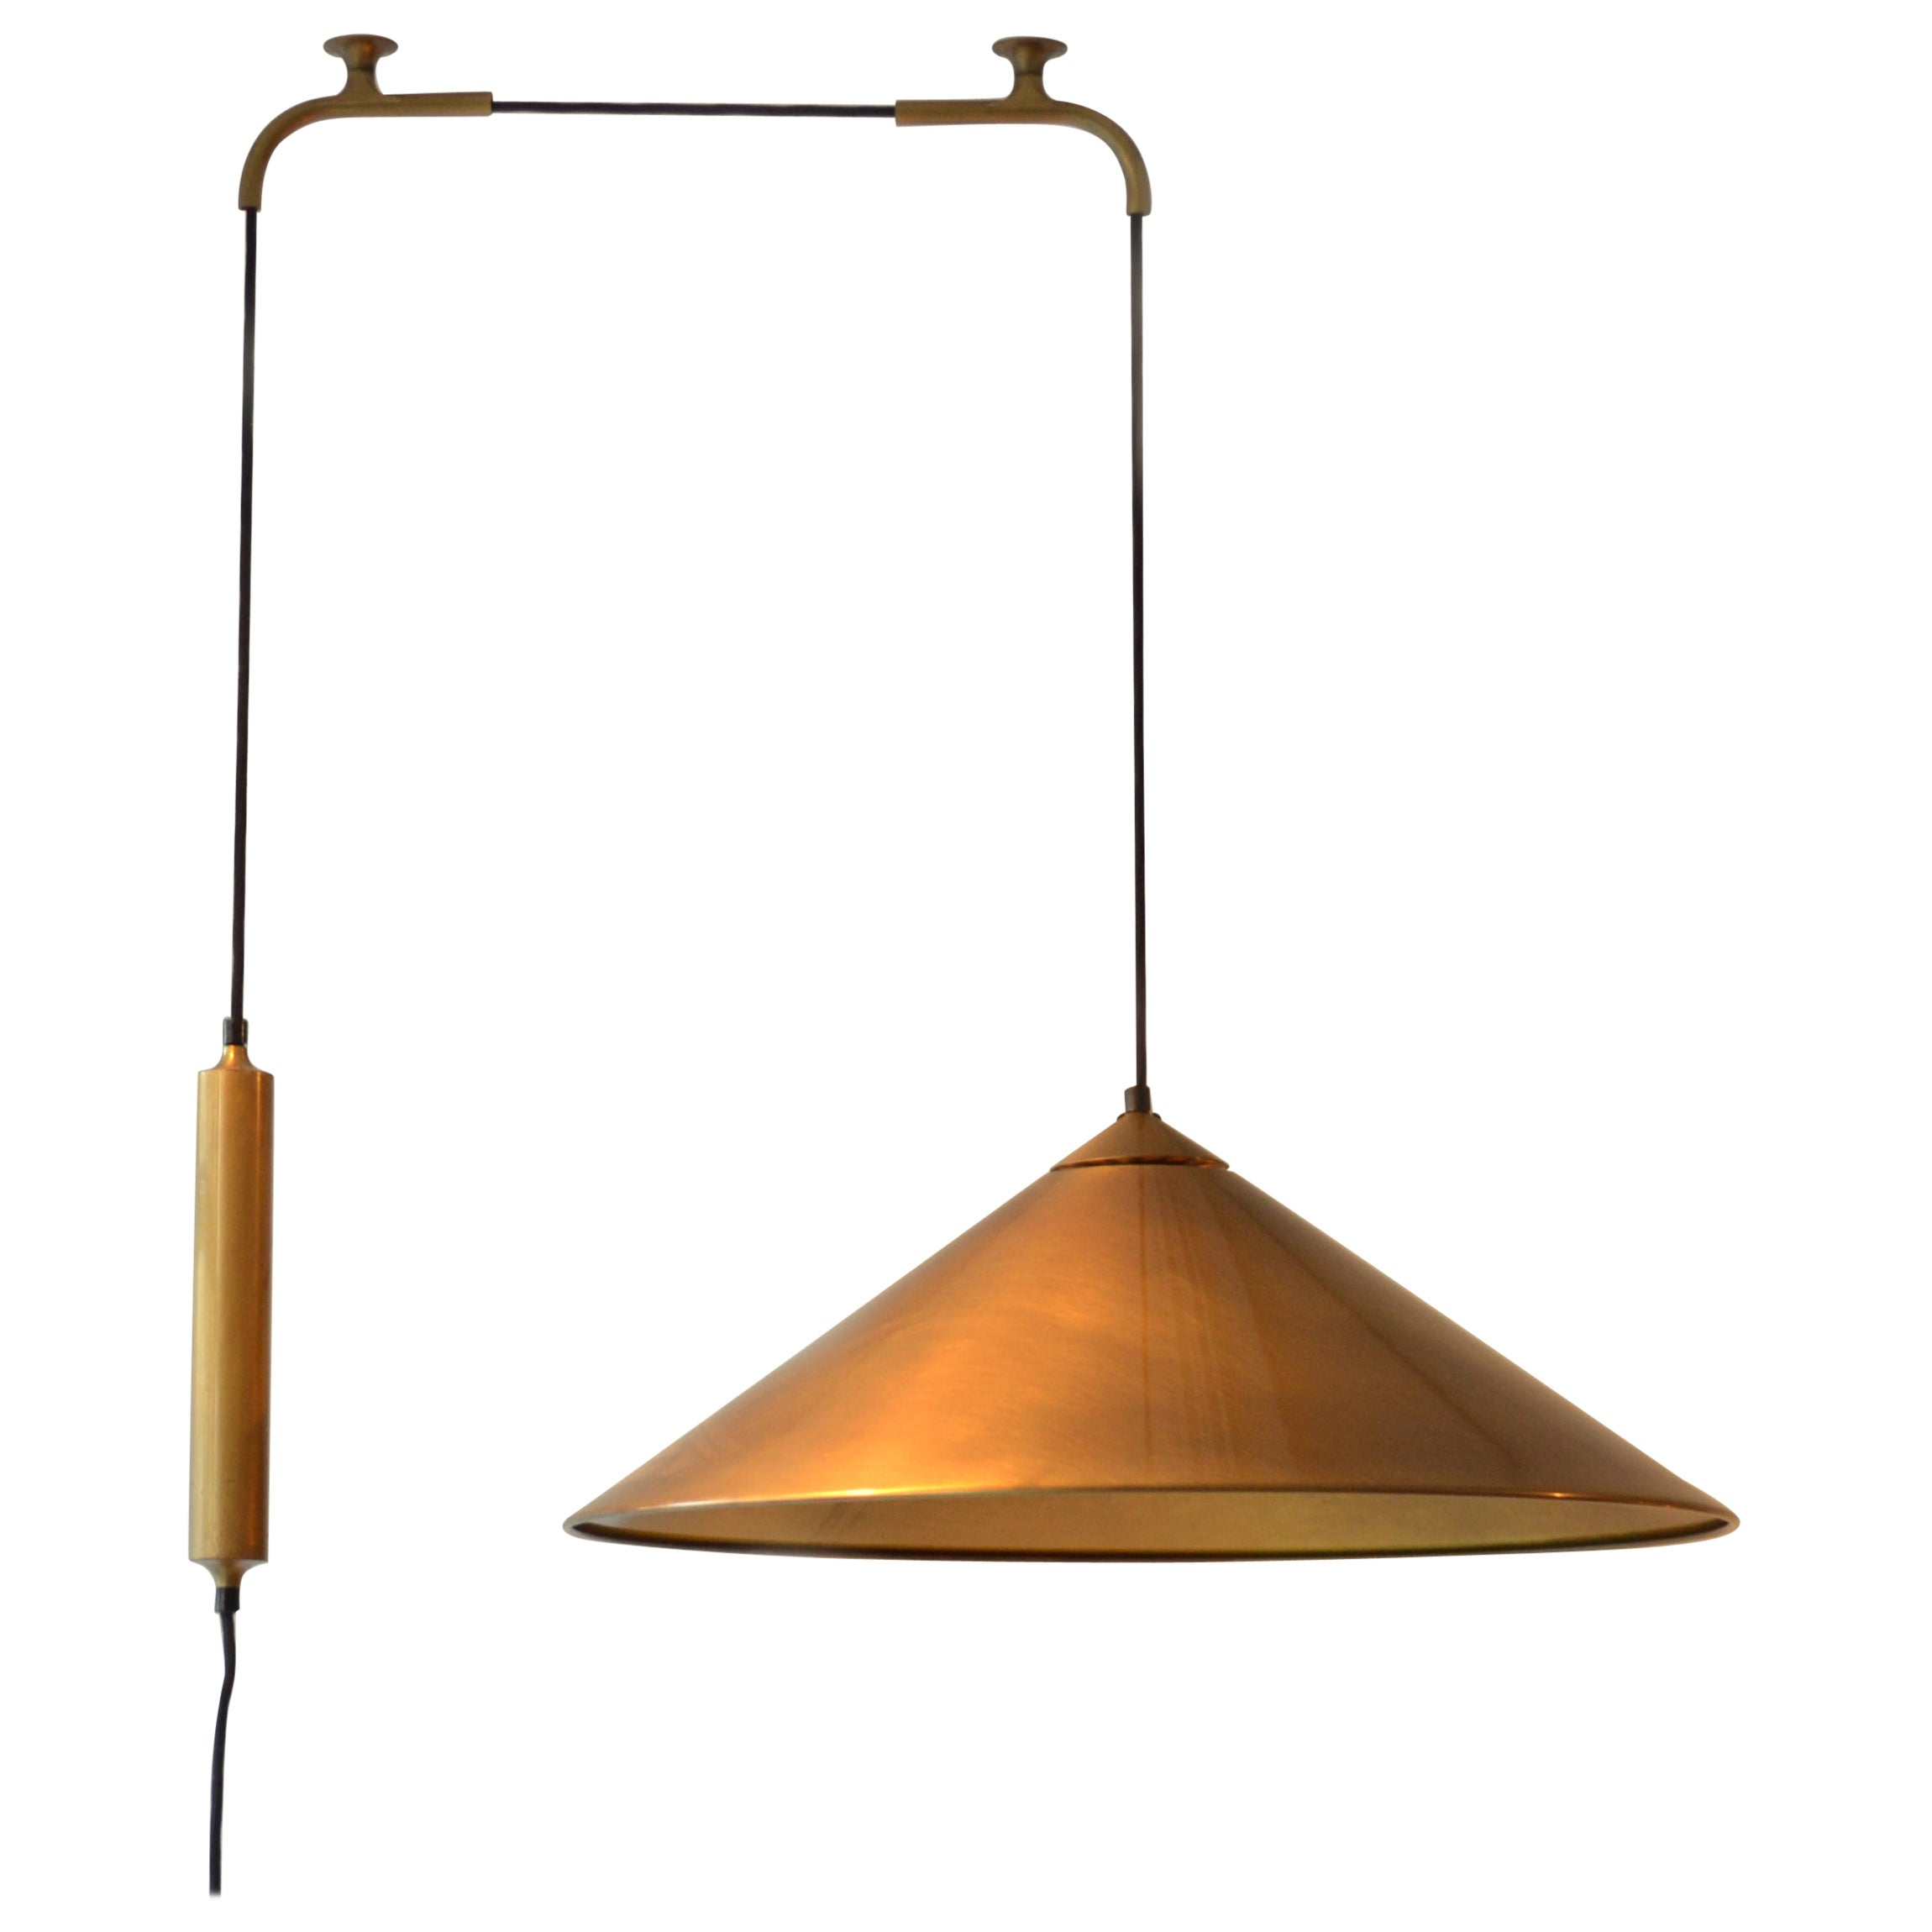 Counterbalance Brass Pendant 'Keos' Elongated Side Weight by Florian Schulz